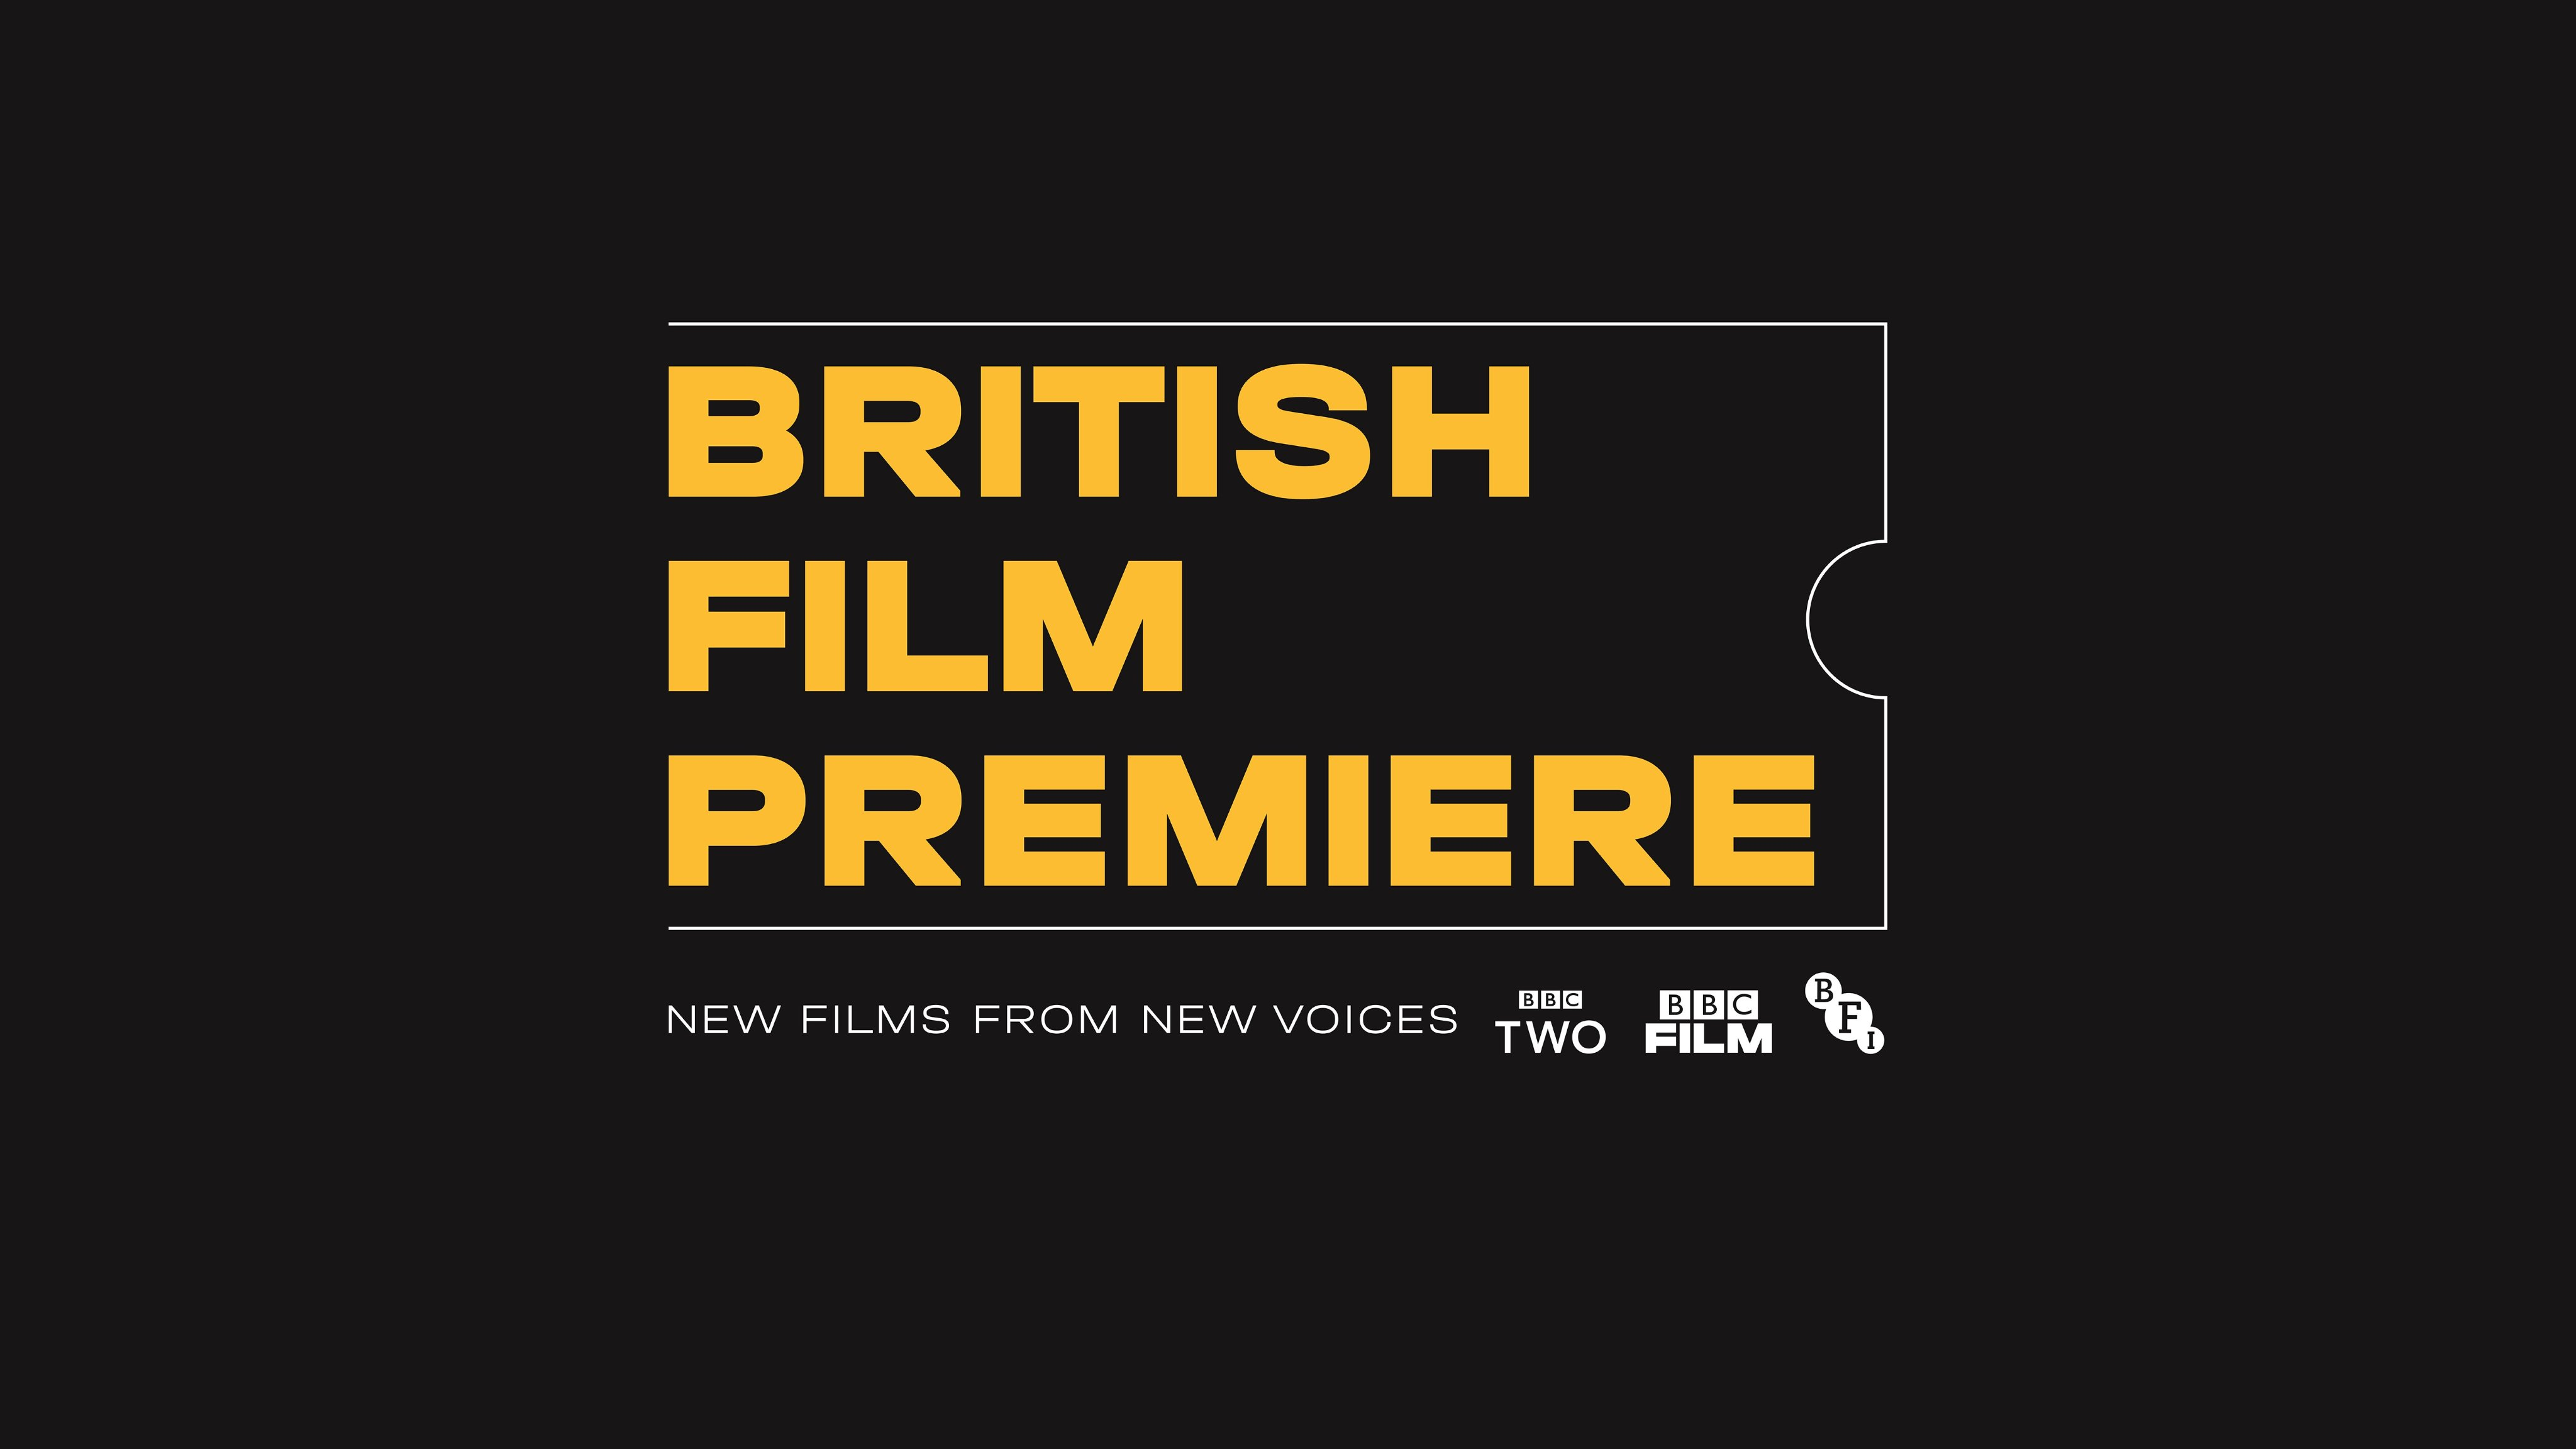 New Films from New Voices